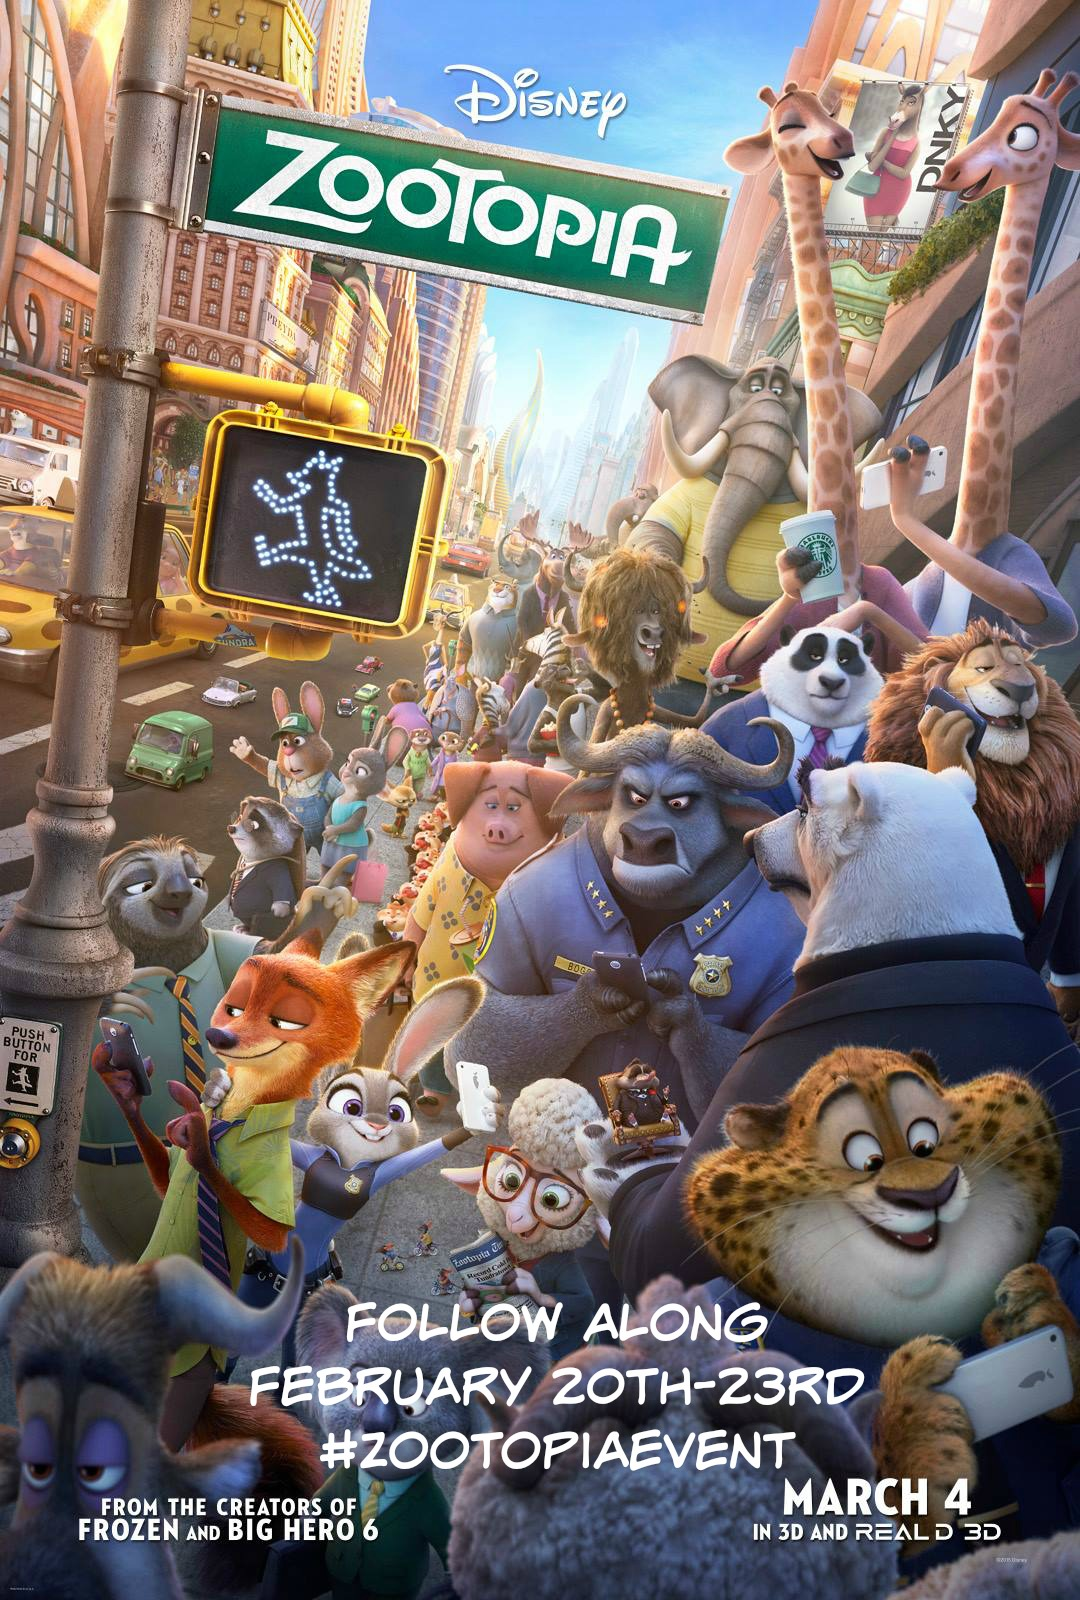 More Fun #Zootopia Trailers